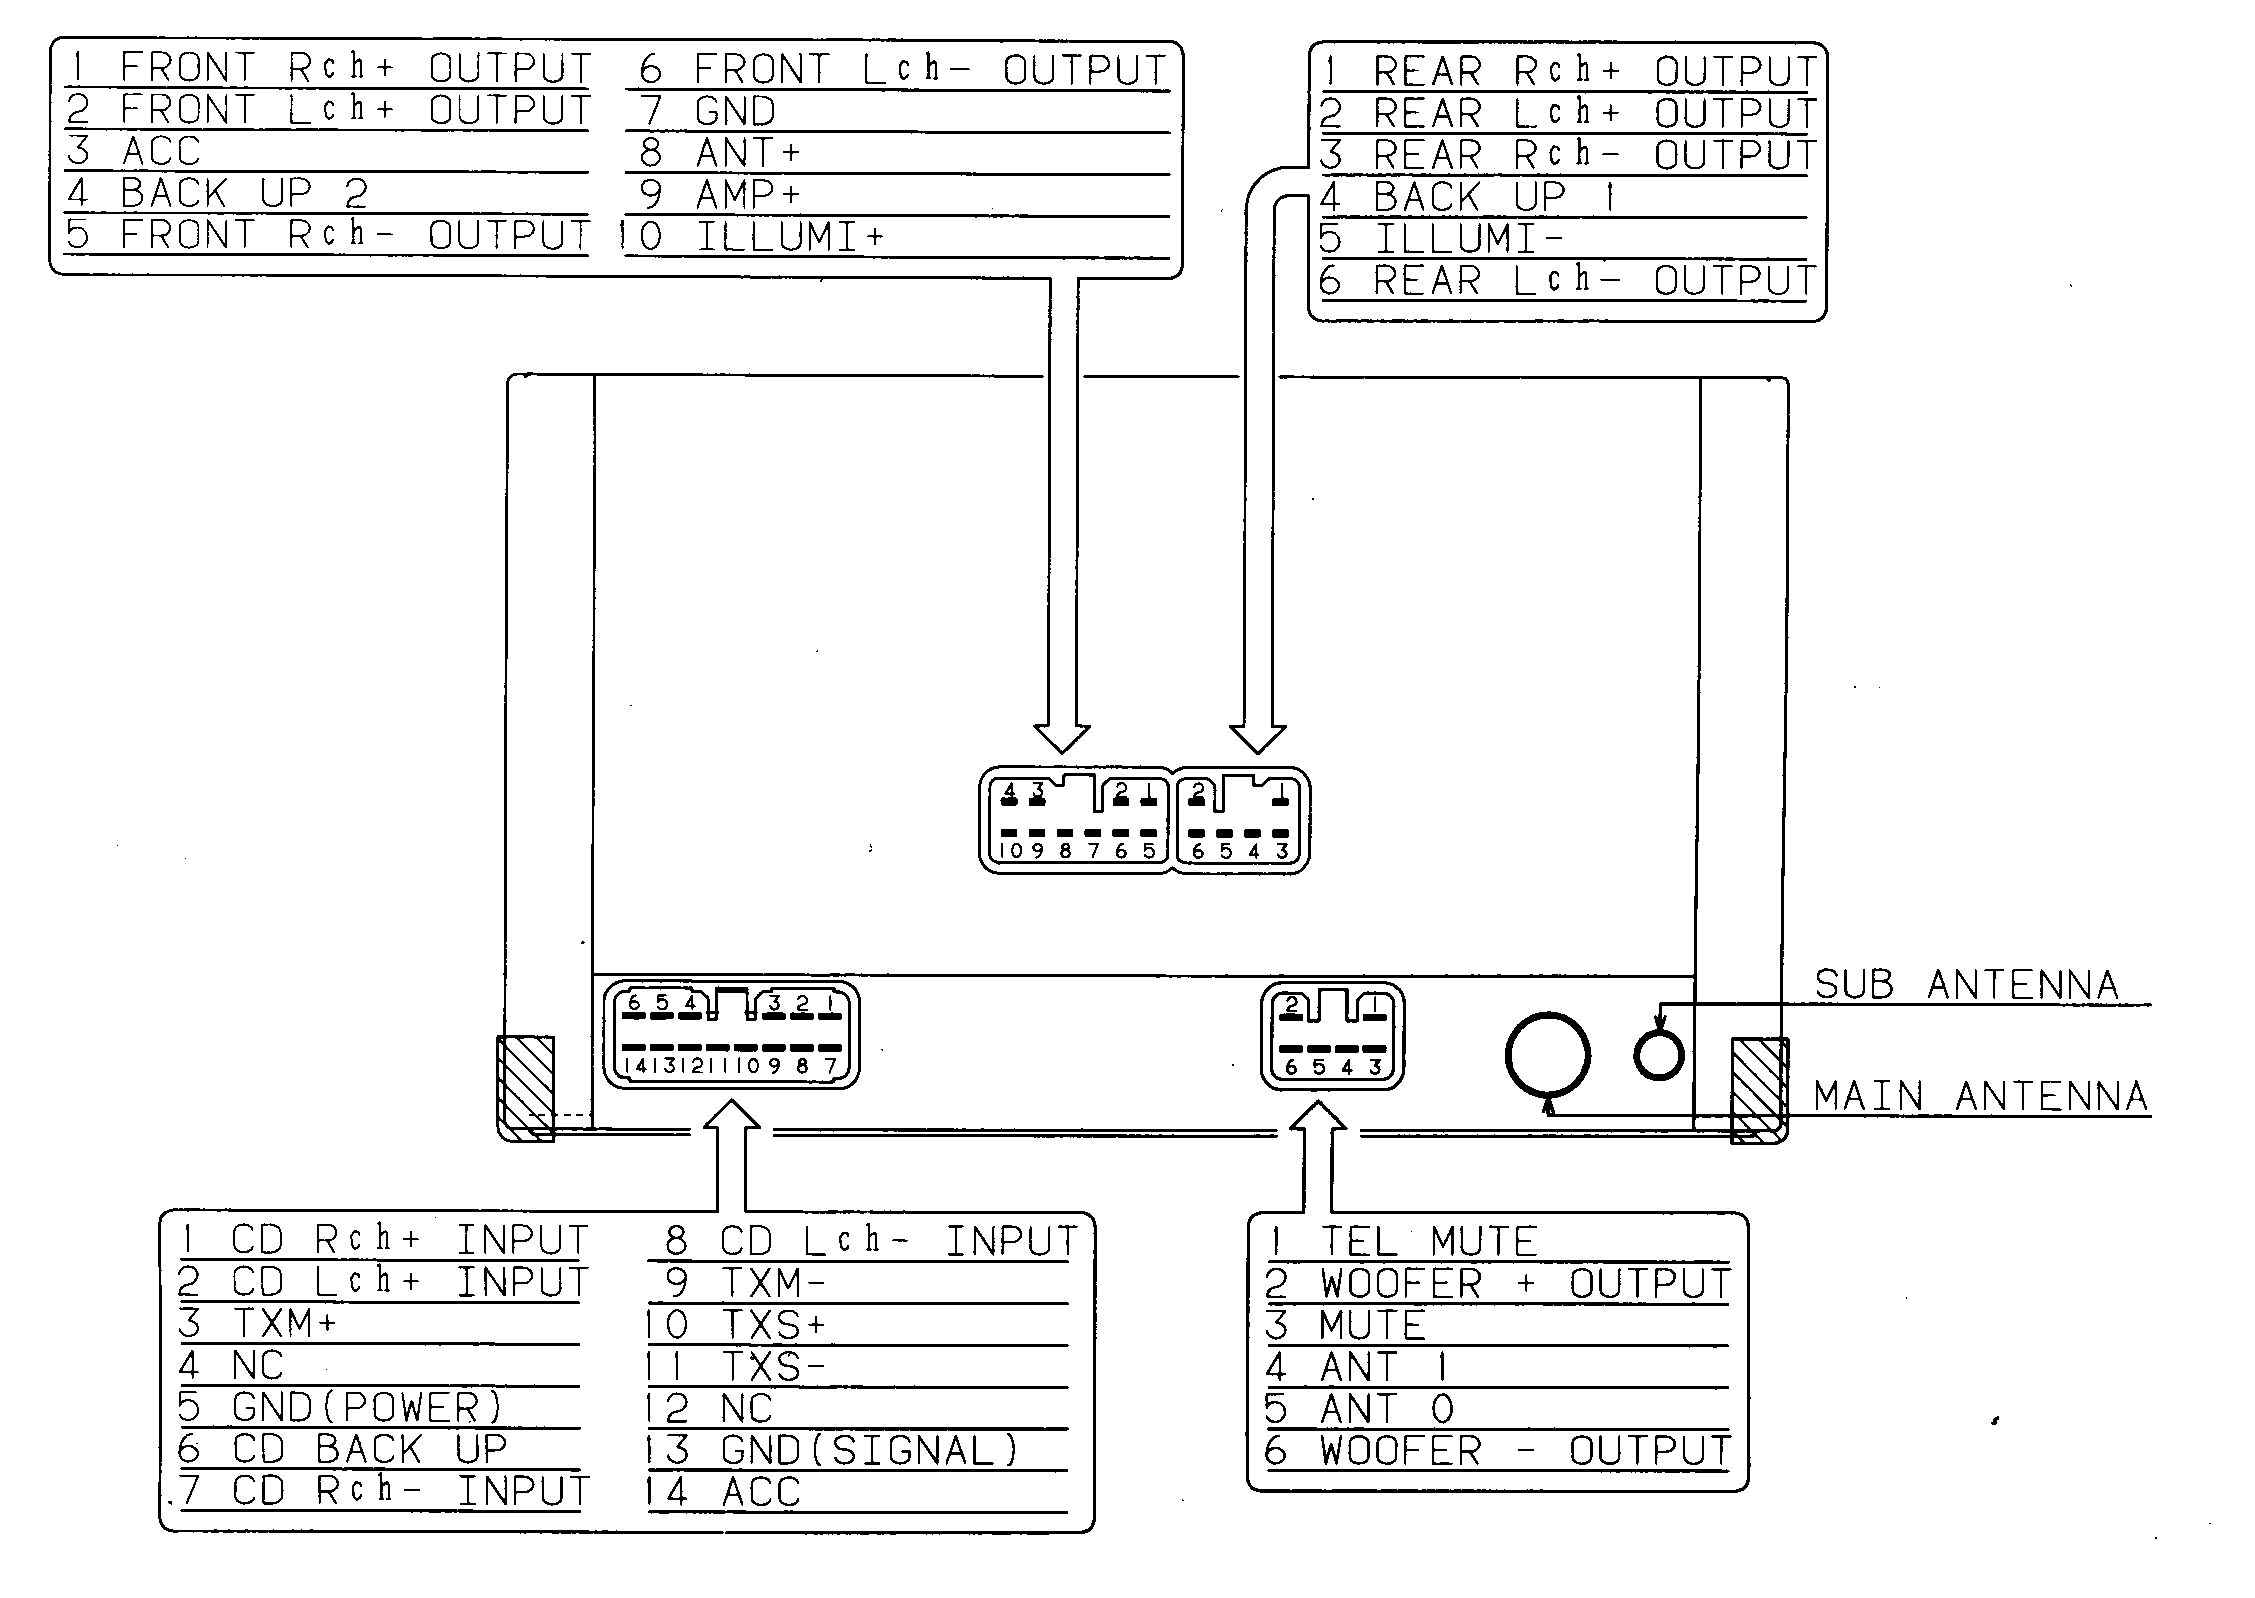 sony marine stereo wiring diagram Collection-Wiring Harness Diagram for A sony Xplod Radio Wiring Diagram for Sony Radio Wiring Diagram 12-a